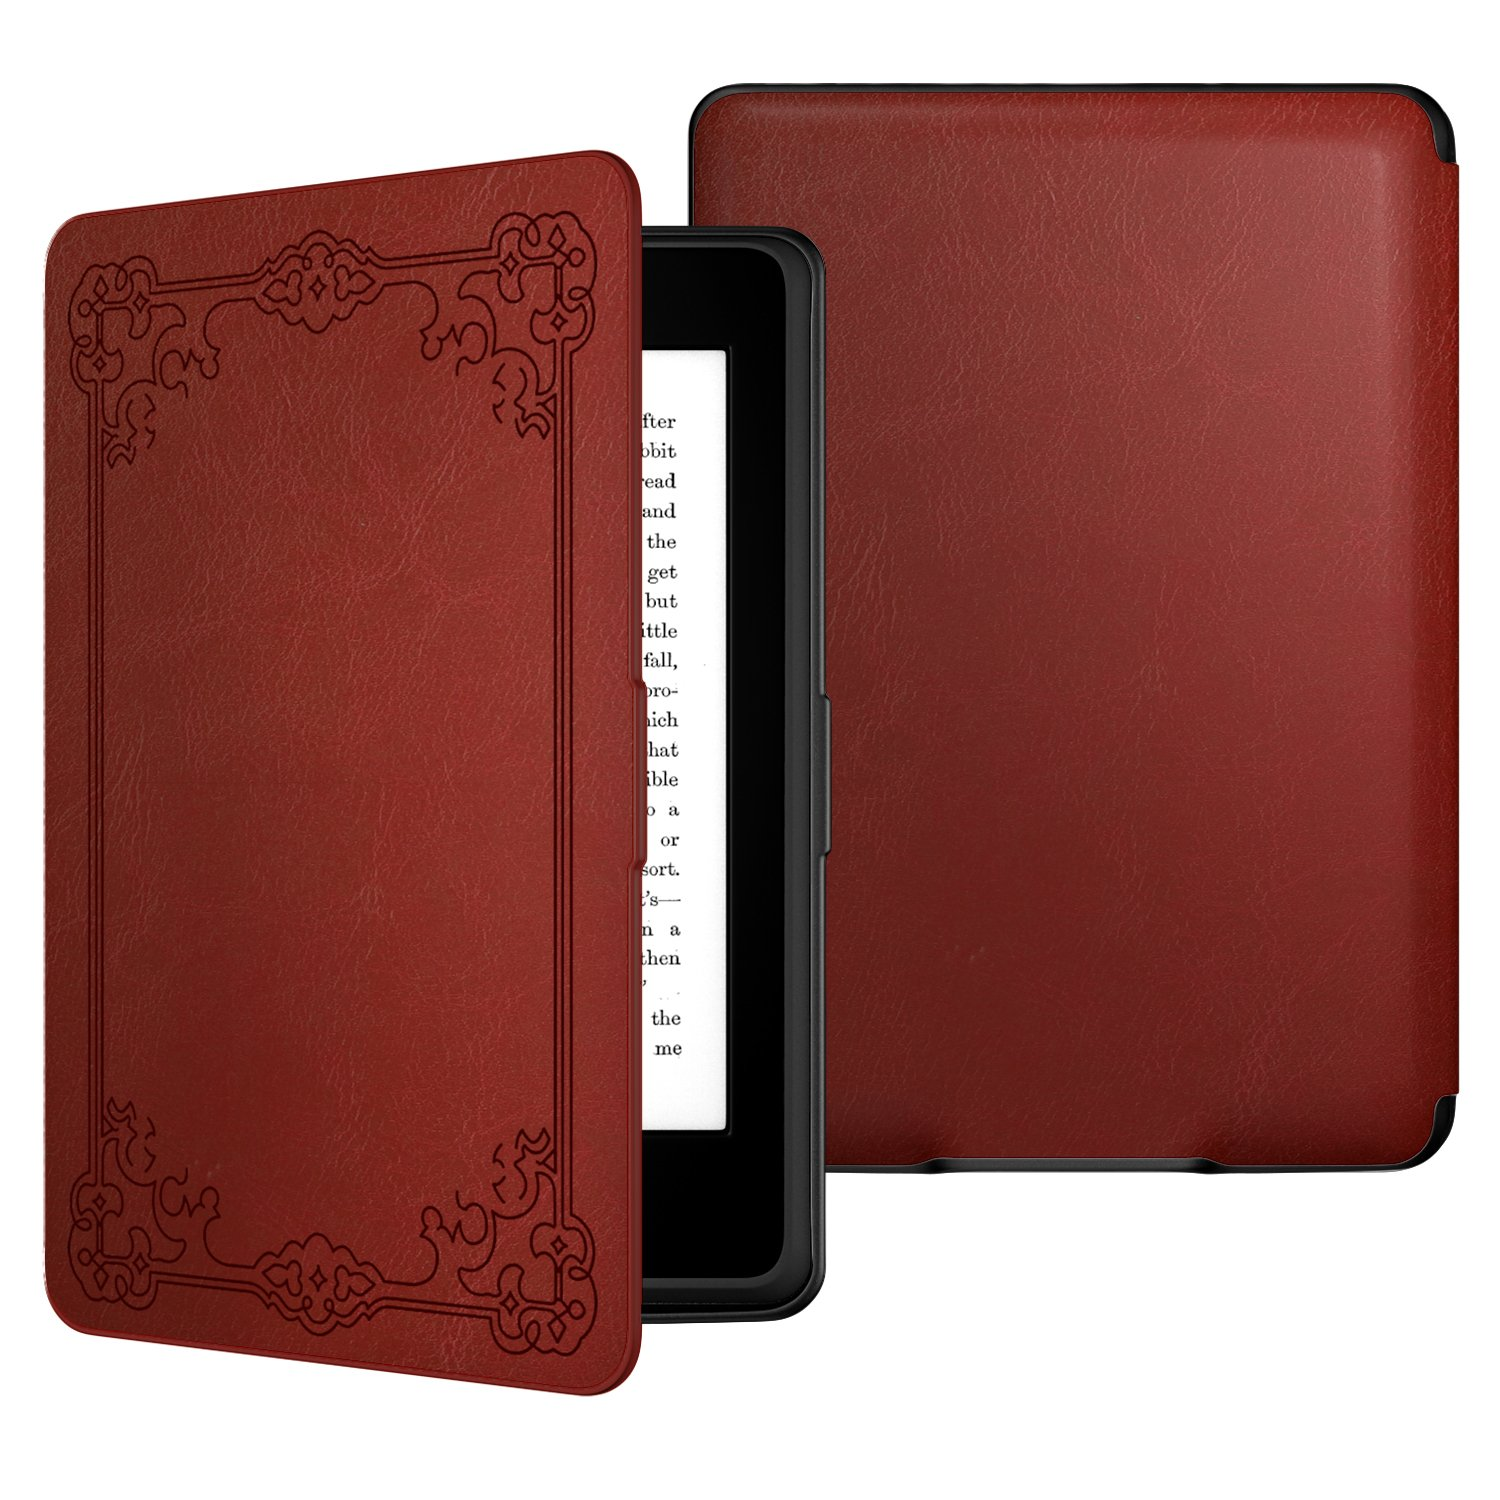 MoKo Case for Kindle Paperwhite, Premium Thinnest and Lightest PU Leather Cover with Auto Wake / Sleep for Amazon All-New Kindle Paperwhite (Fits 2012, 2013, 2015 and 2016 Versions), Vintage Style by MoKo